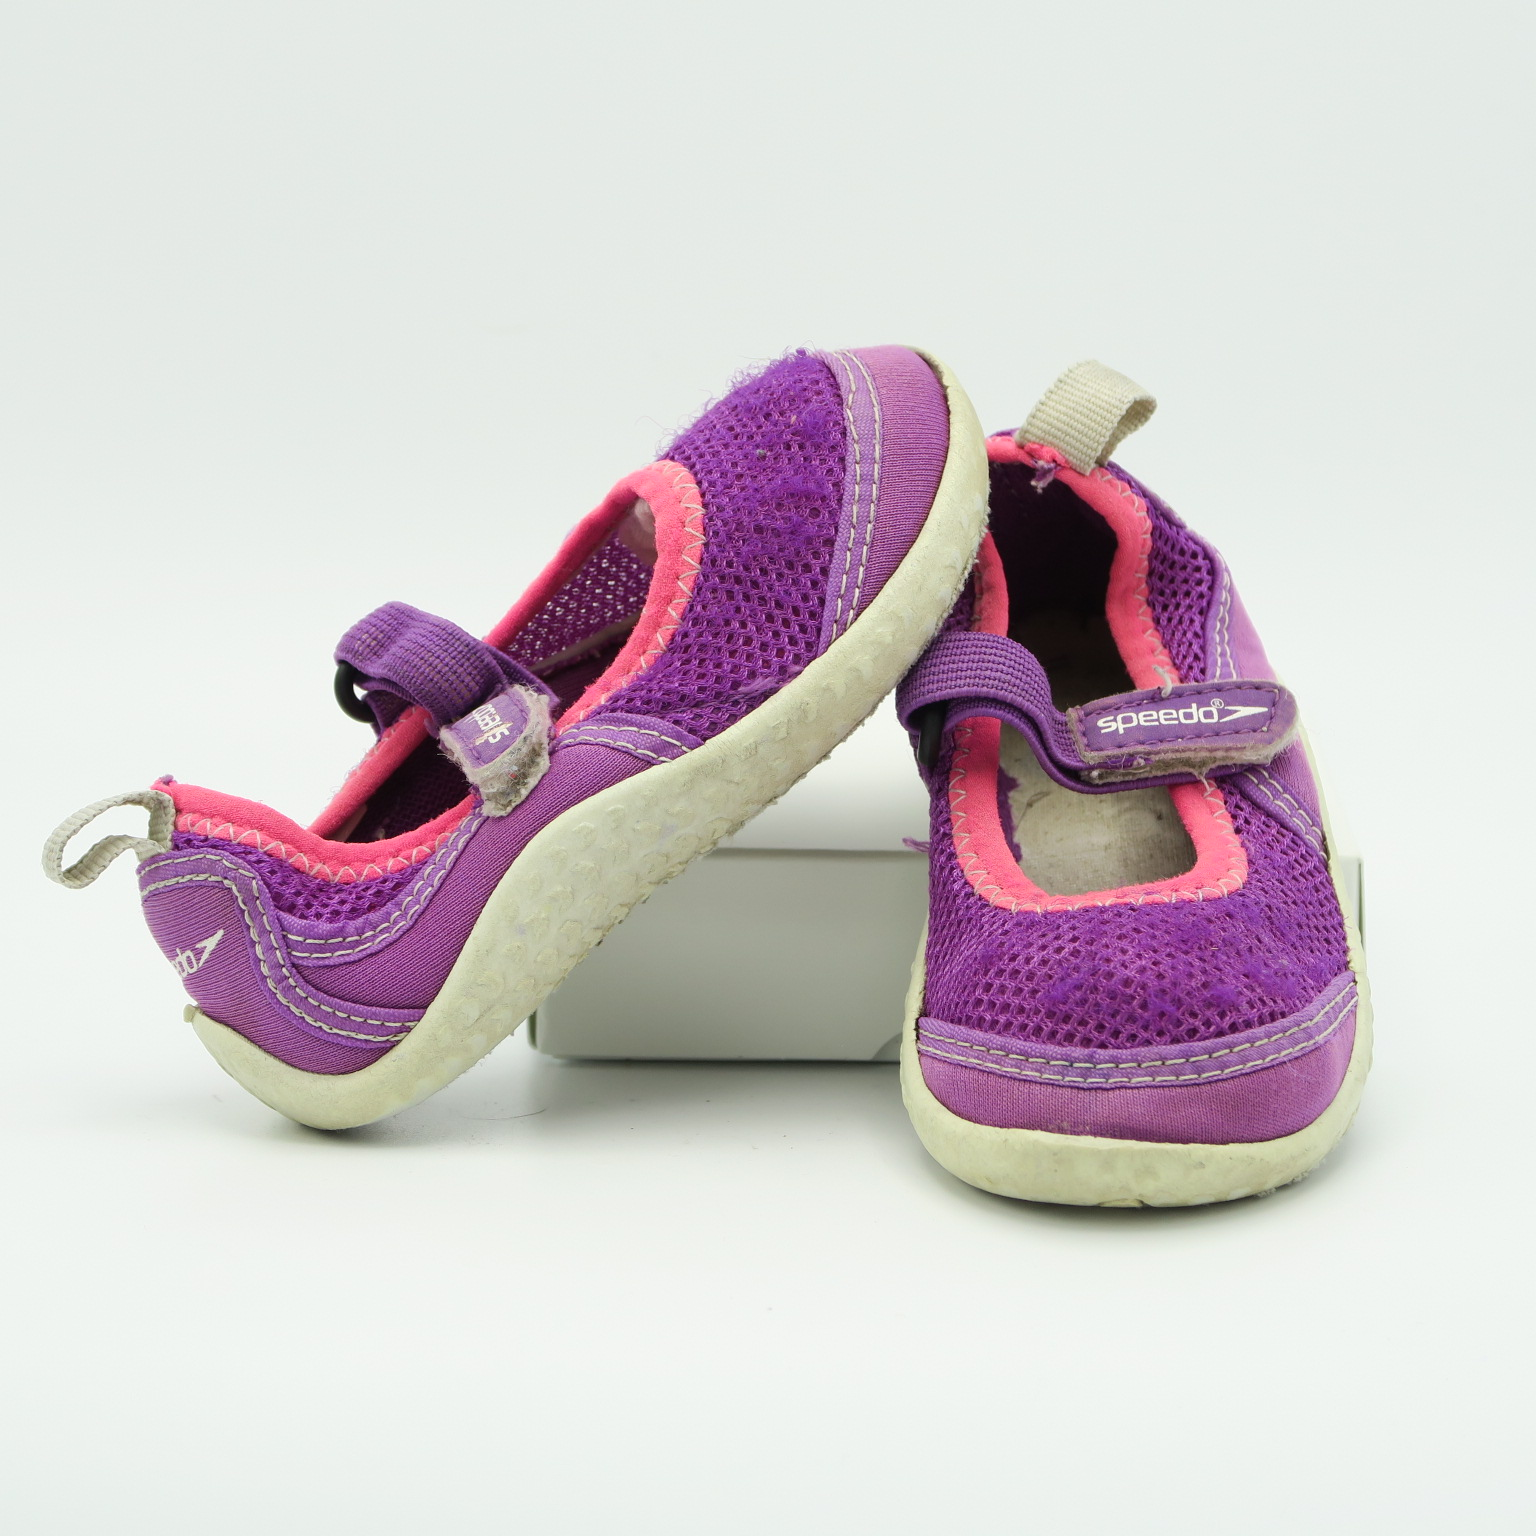 23bd81c607 Water Shoes size: 5-6 Toddler - The Swoondle Society